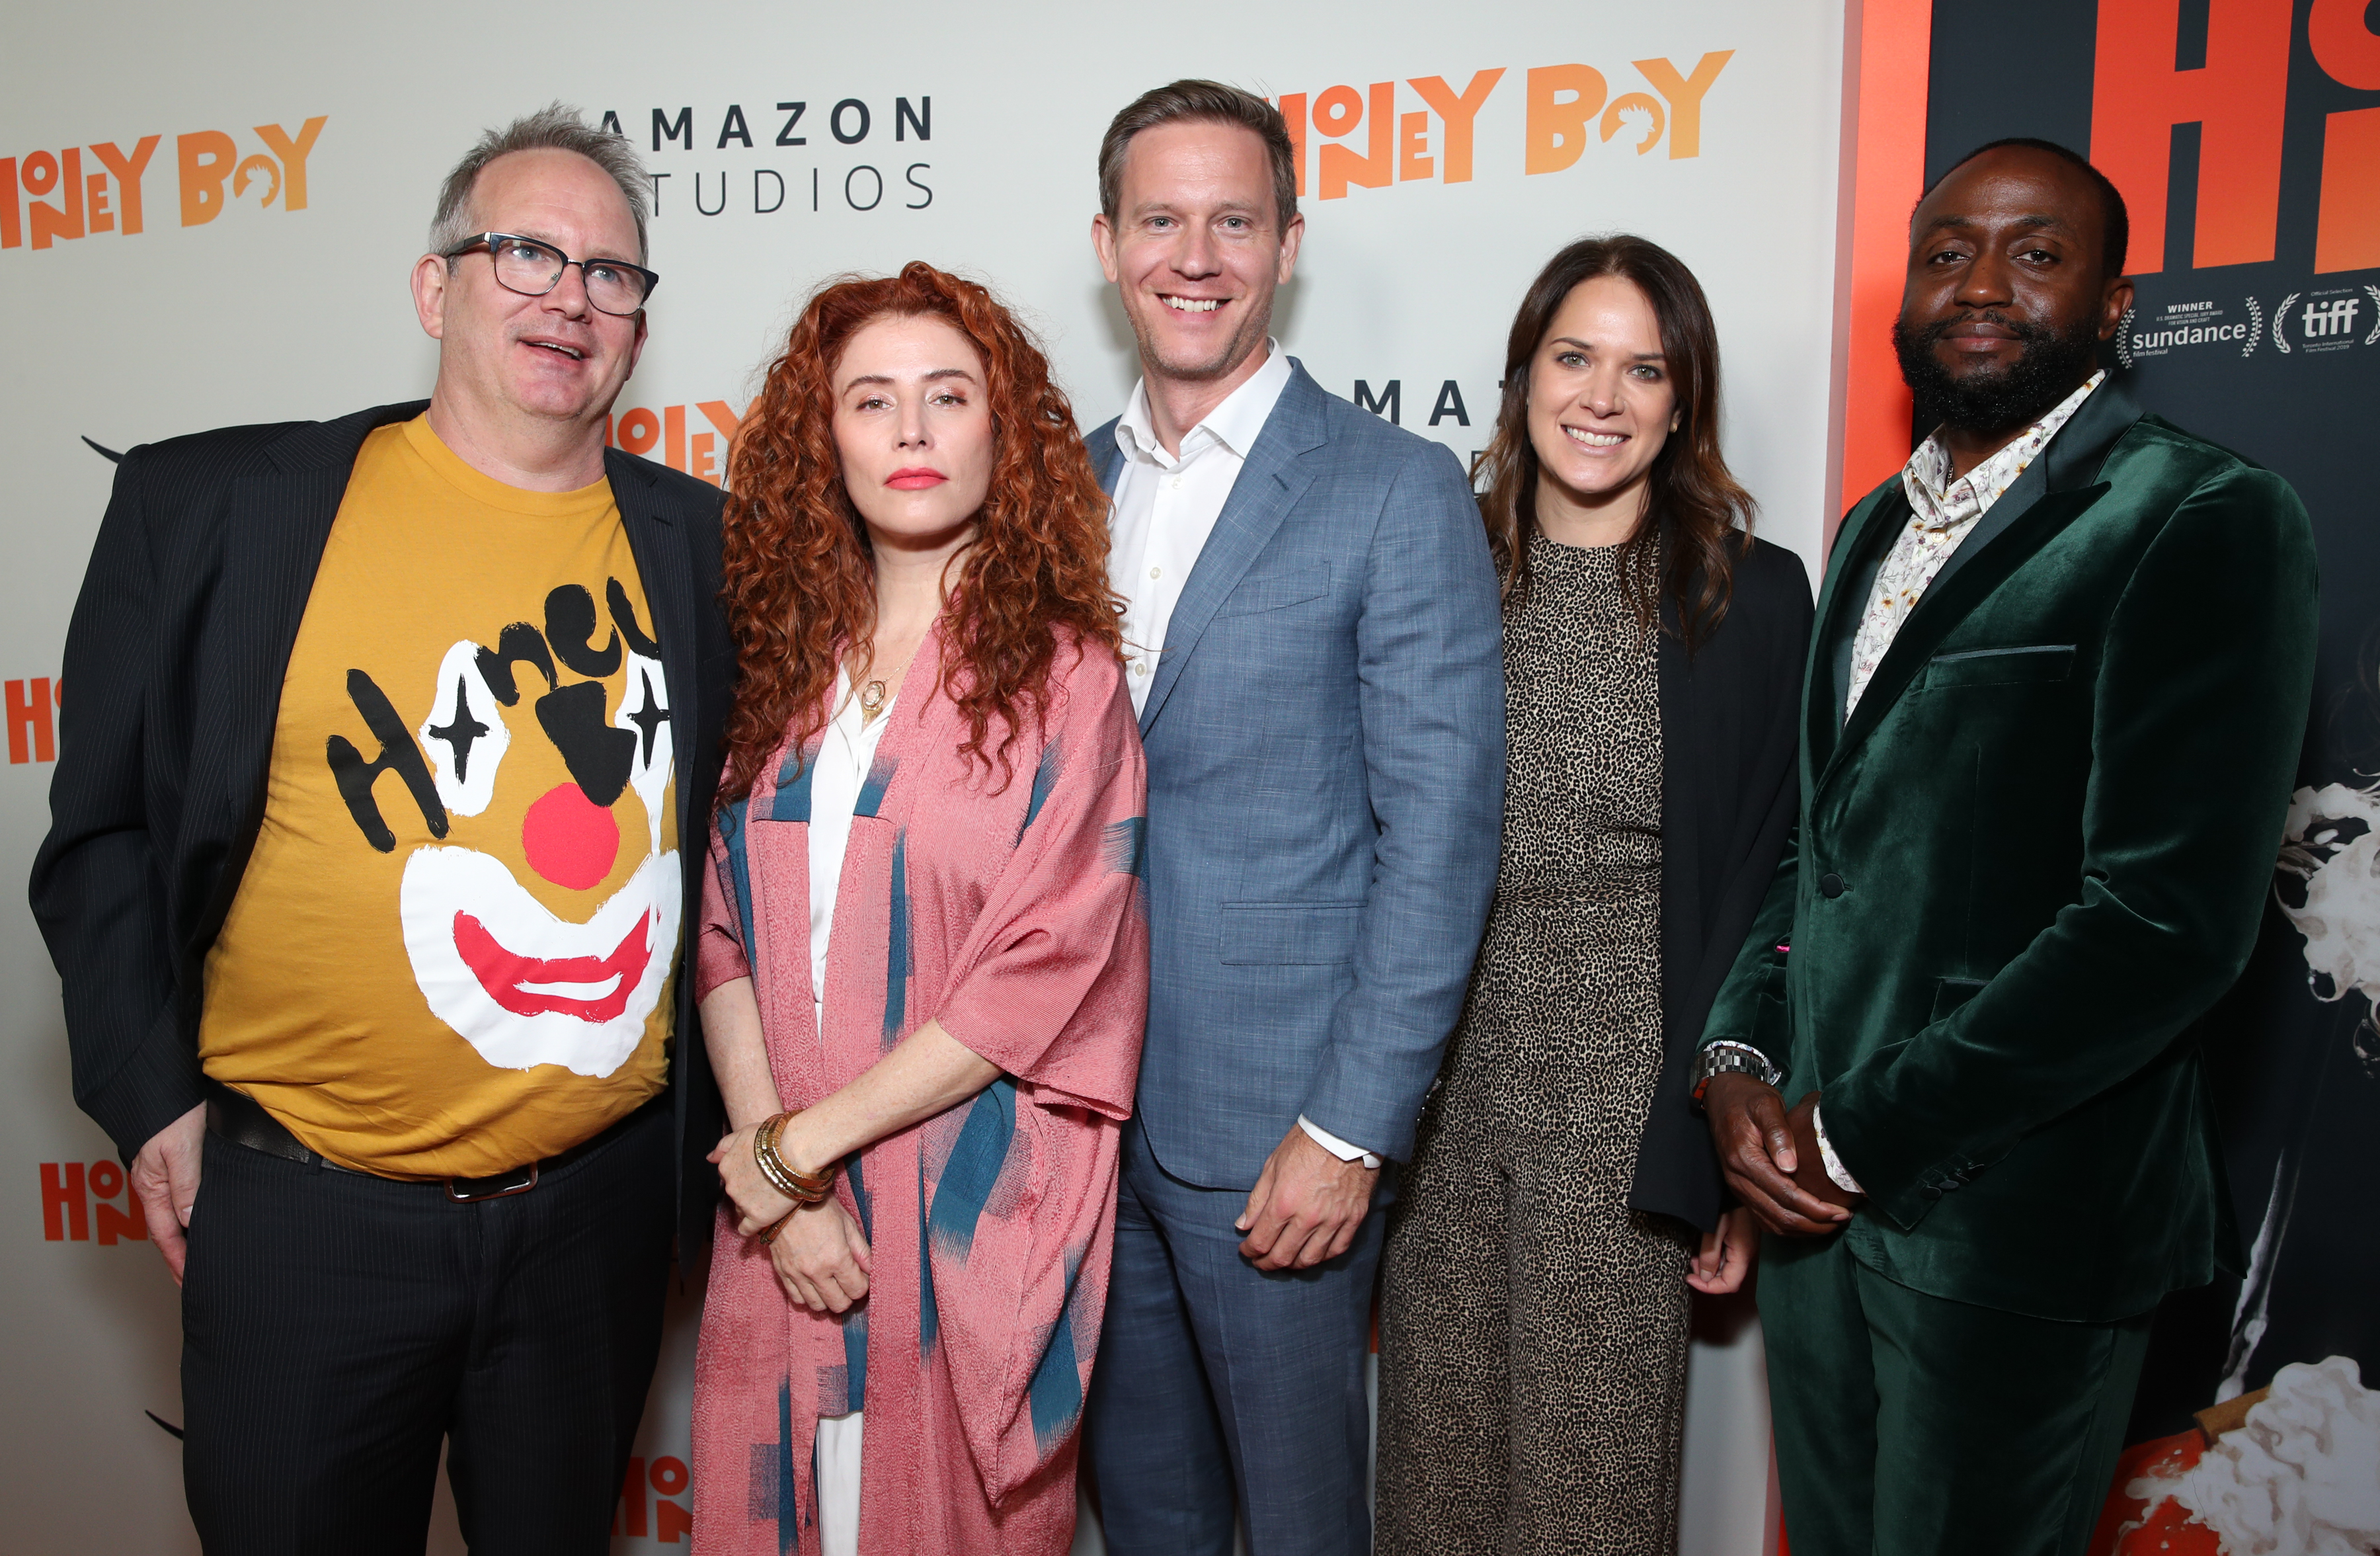 Ted Hope, Byron Bowers, Alma Har'el, Julie Rapaport, and Matt Newman at an event for Honey Boy (2019)